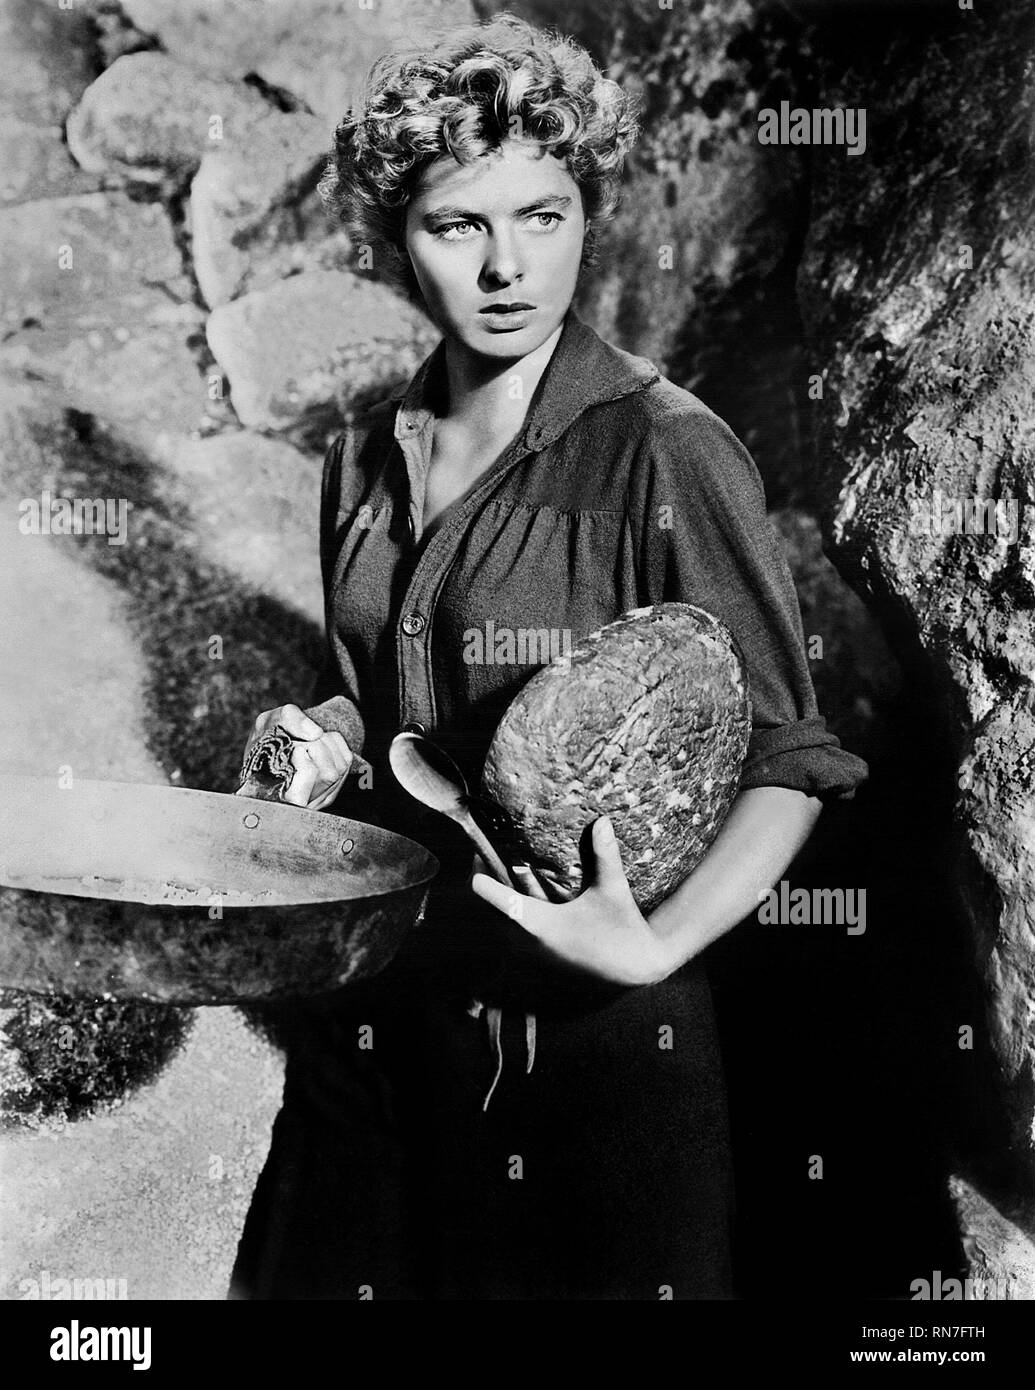 INGRID BERGMAN, FOR WHOM THE BELL TOLLS, 1943 - Stock Image